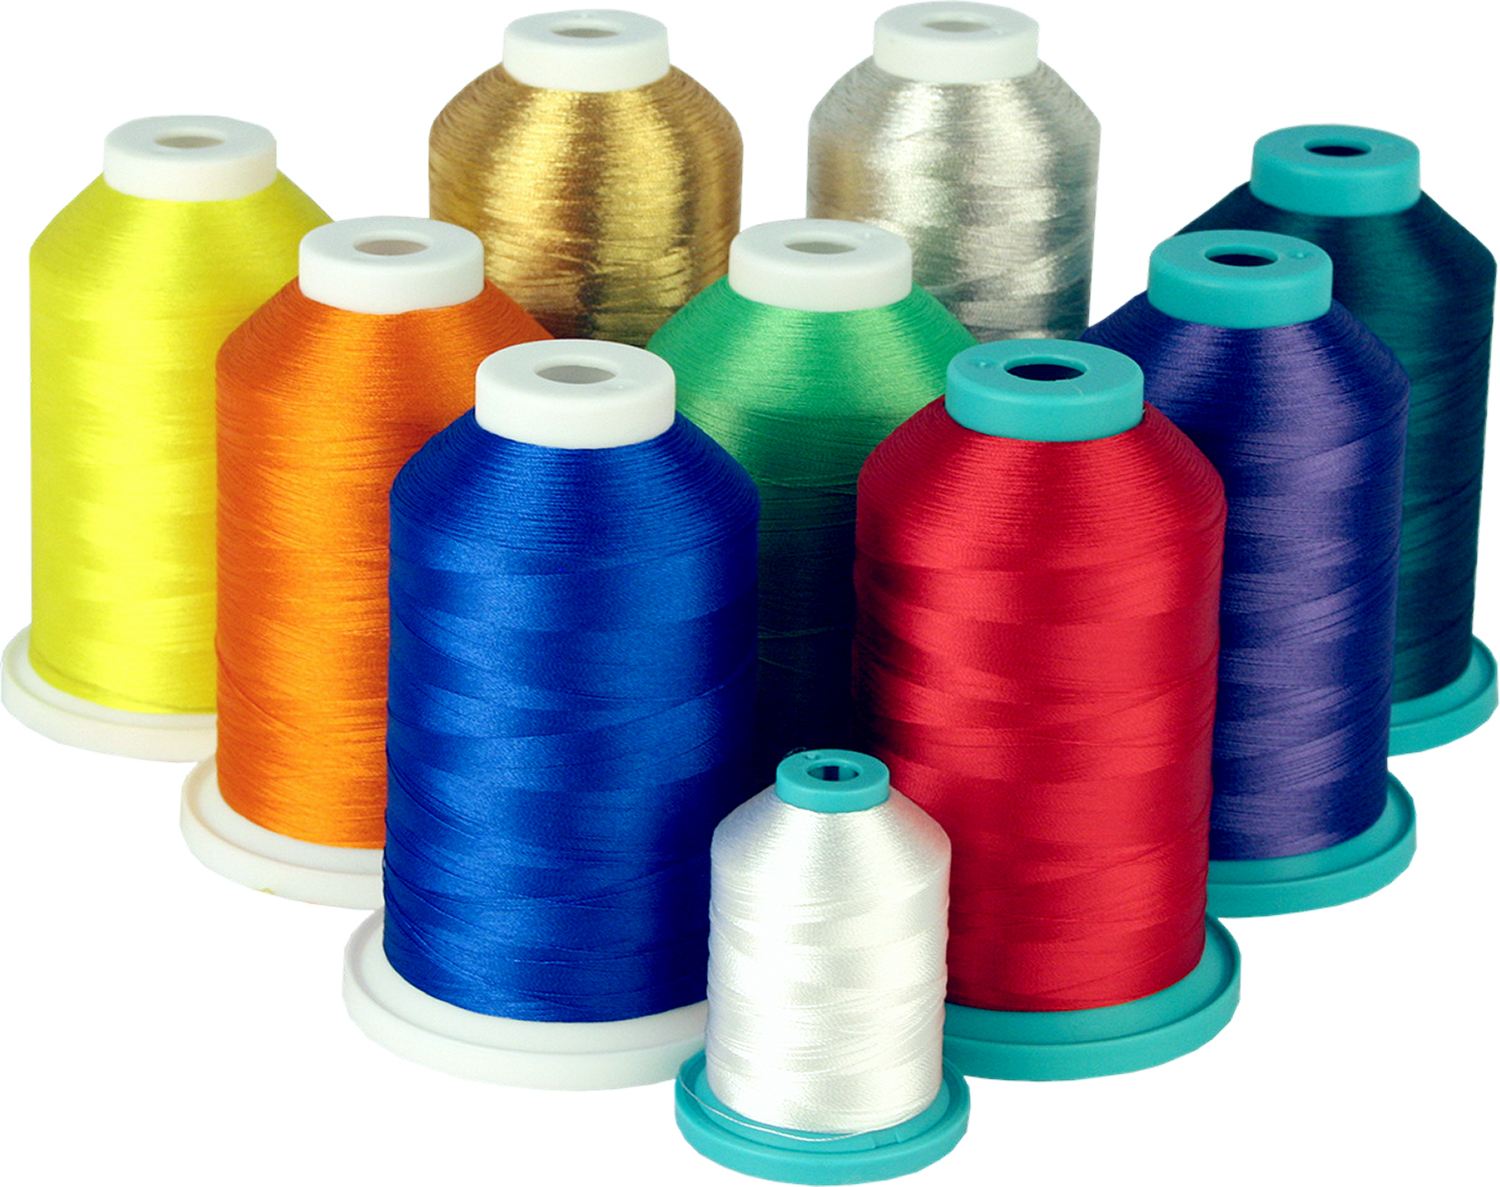 Low prices on machine embroidery supplies, embroidery thread